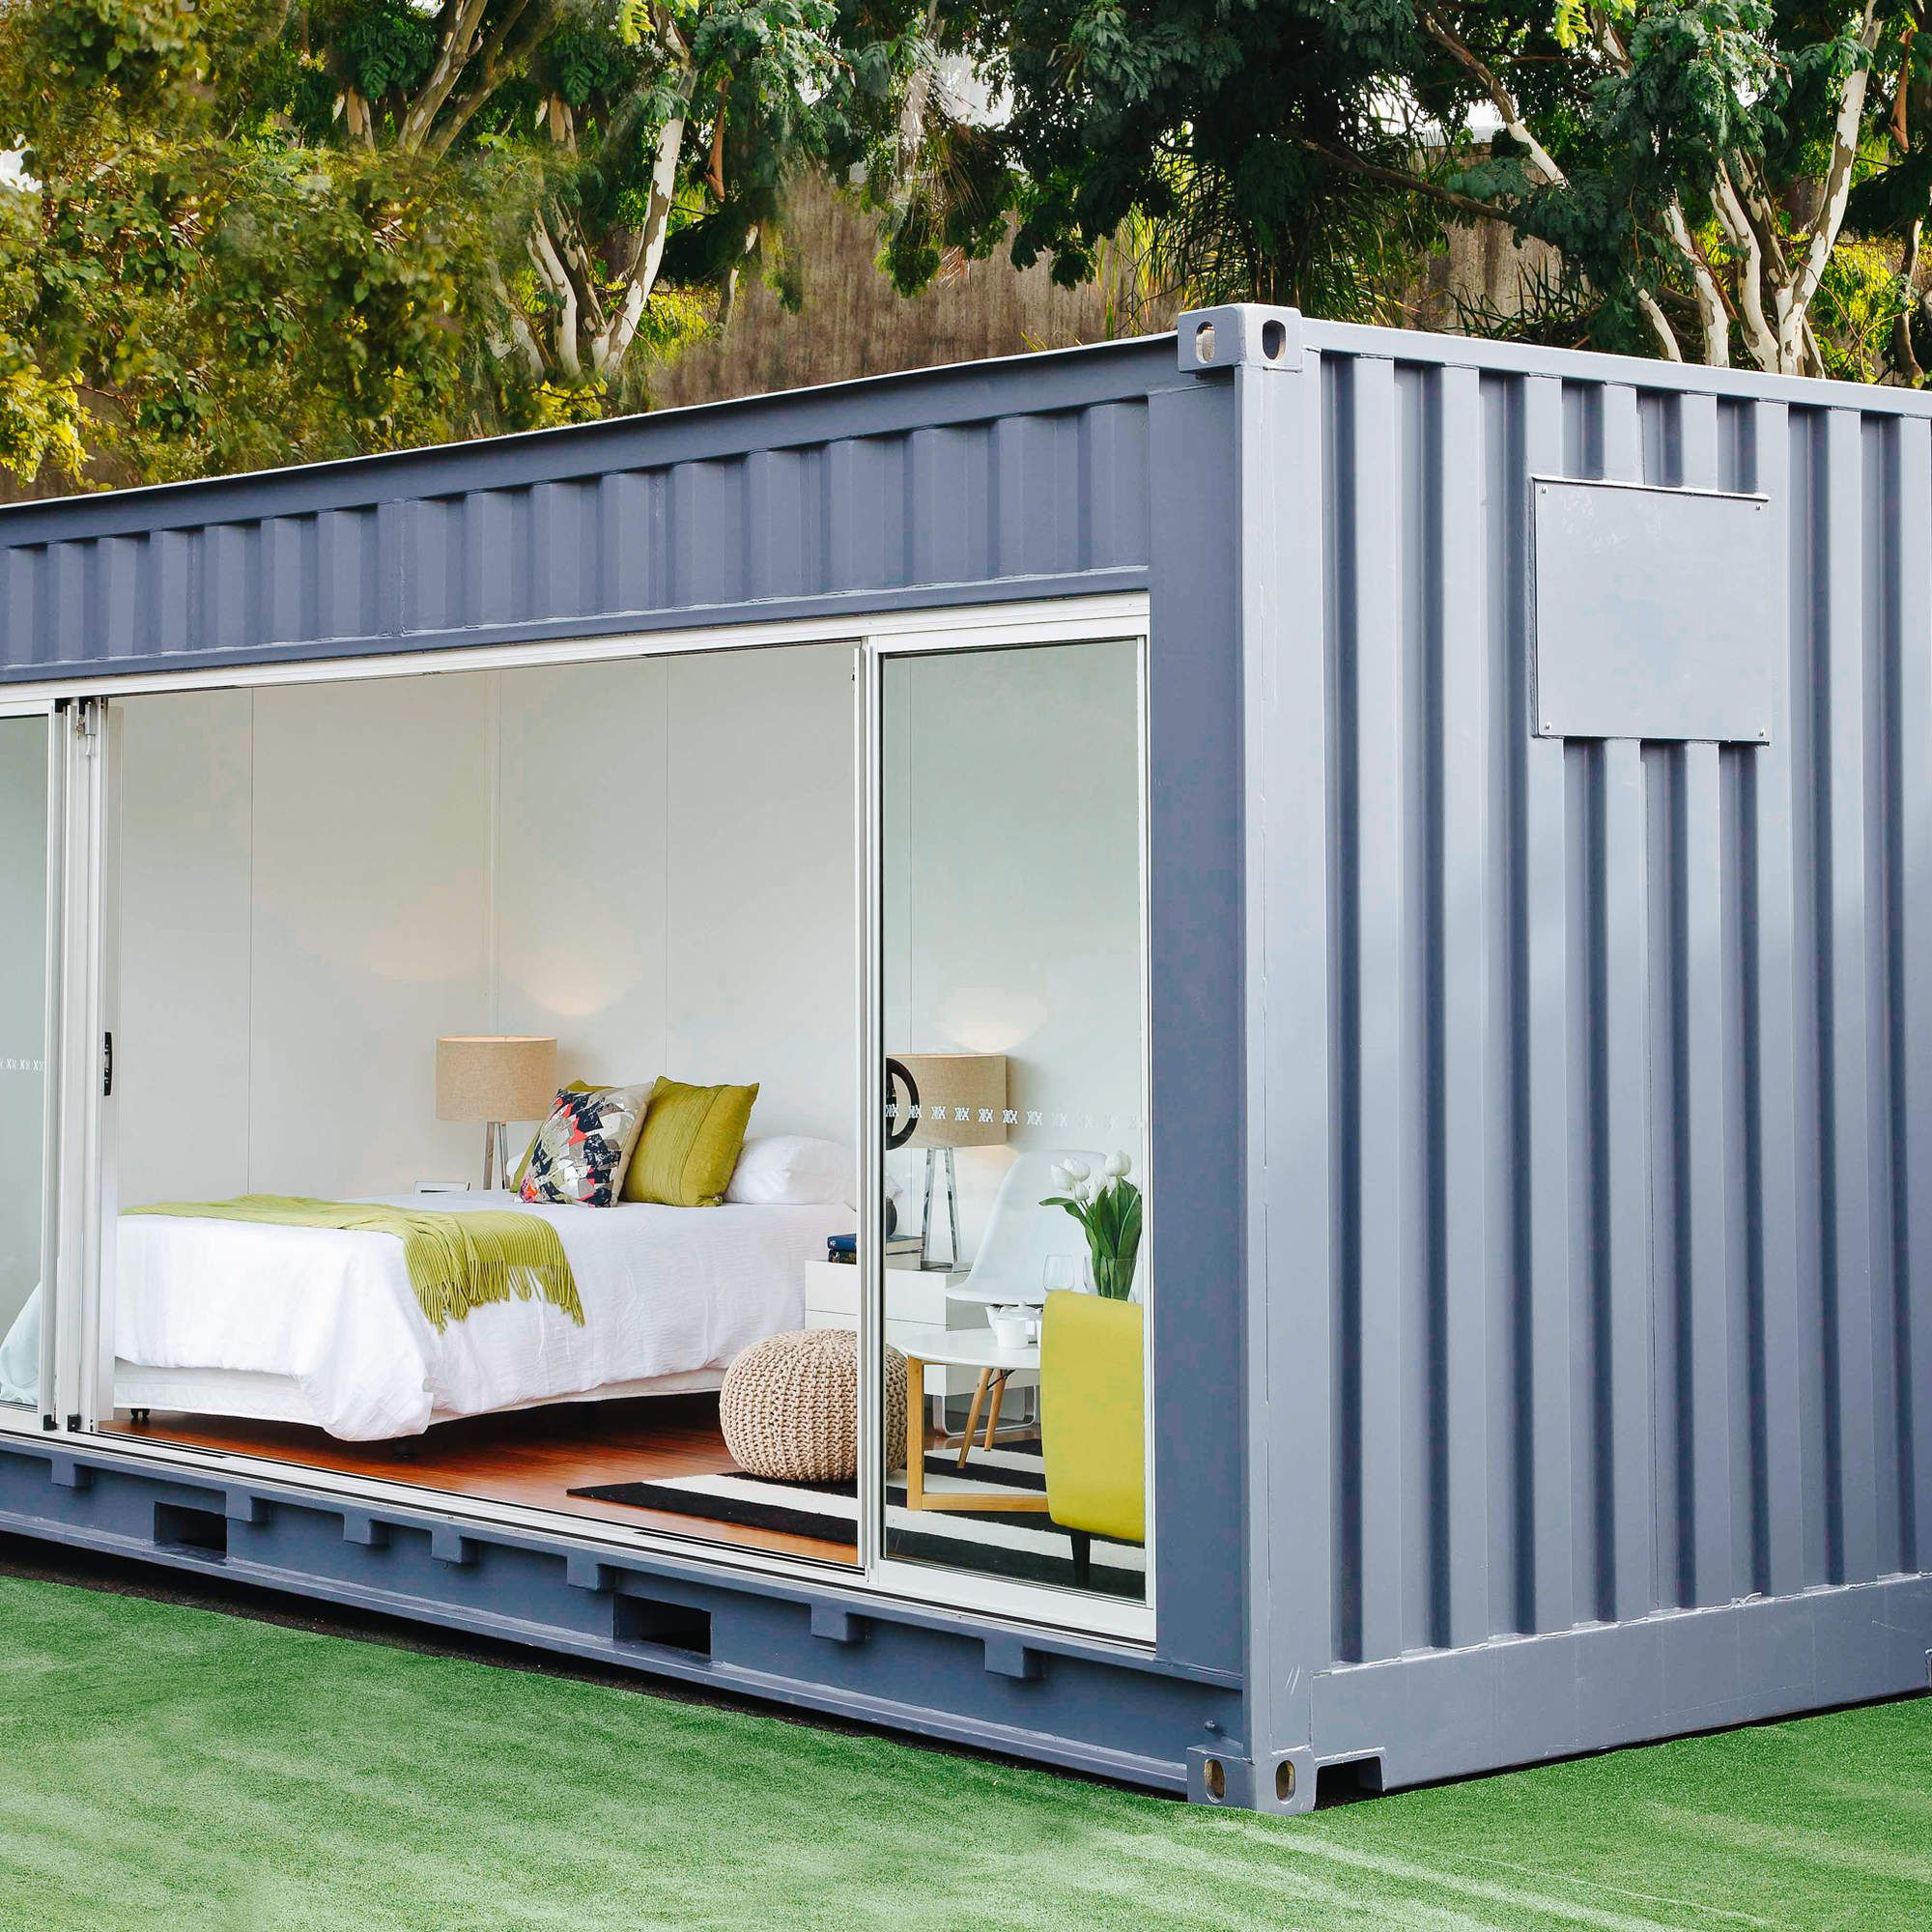 Best Kitchen Gallery: 20 Cool As Hell Shipping Container Homes Ships Room And House of Cargo Container House on rachelxblog.com